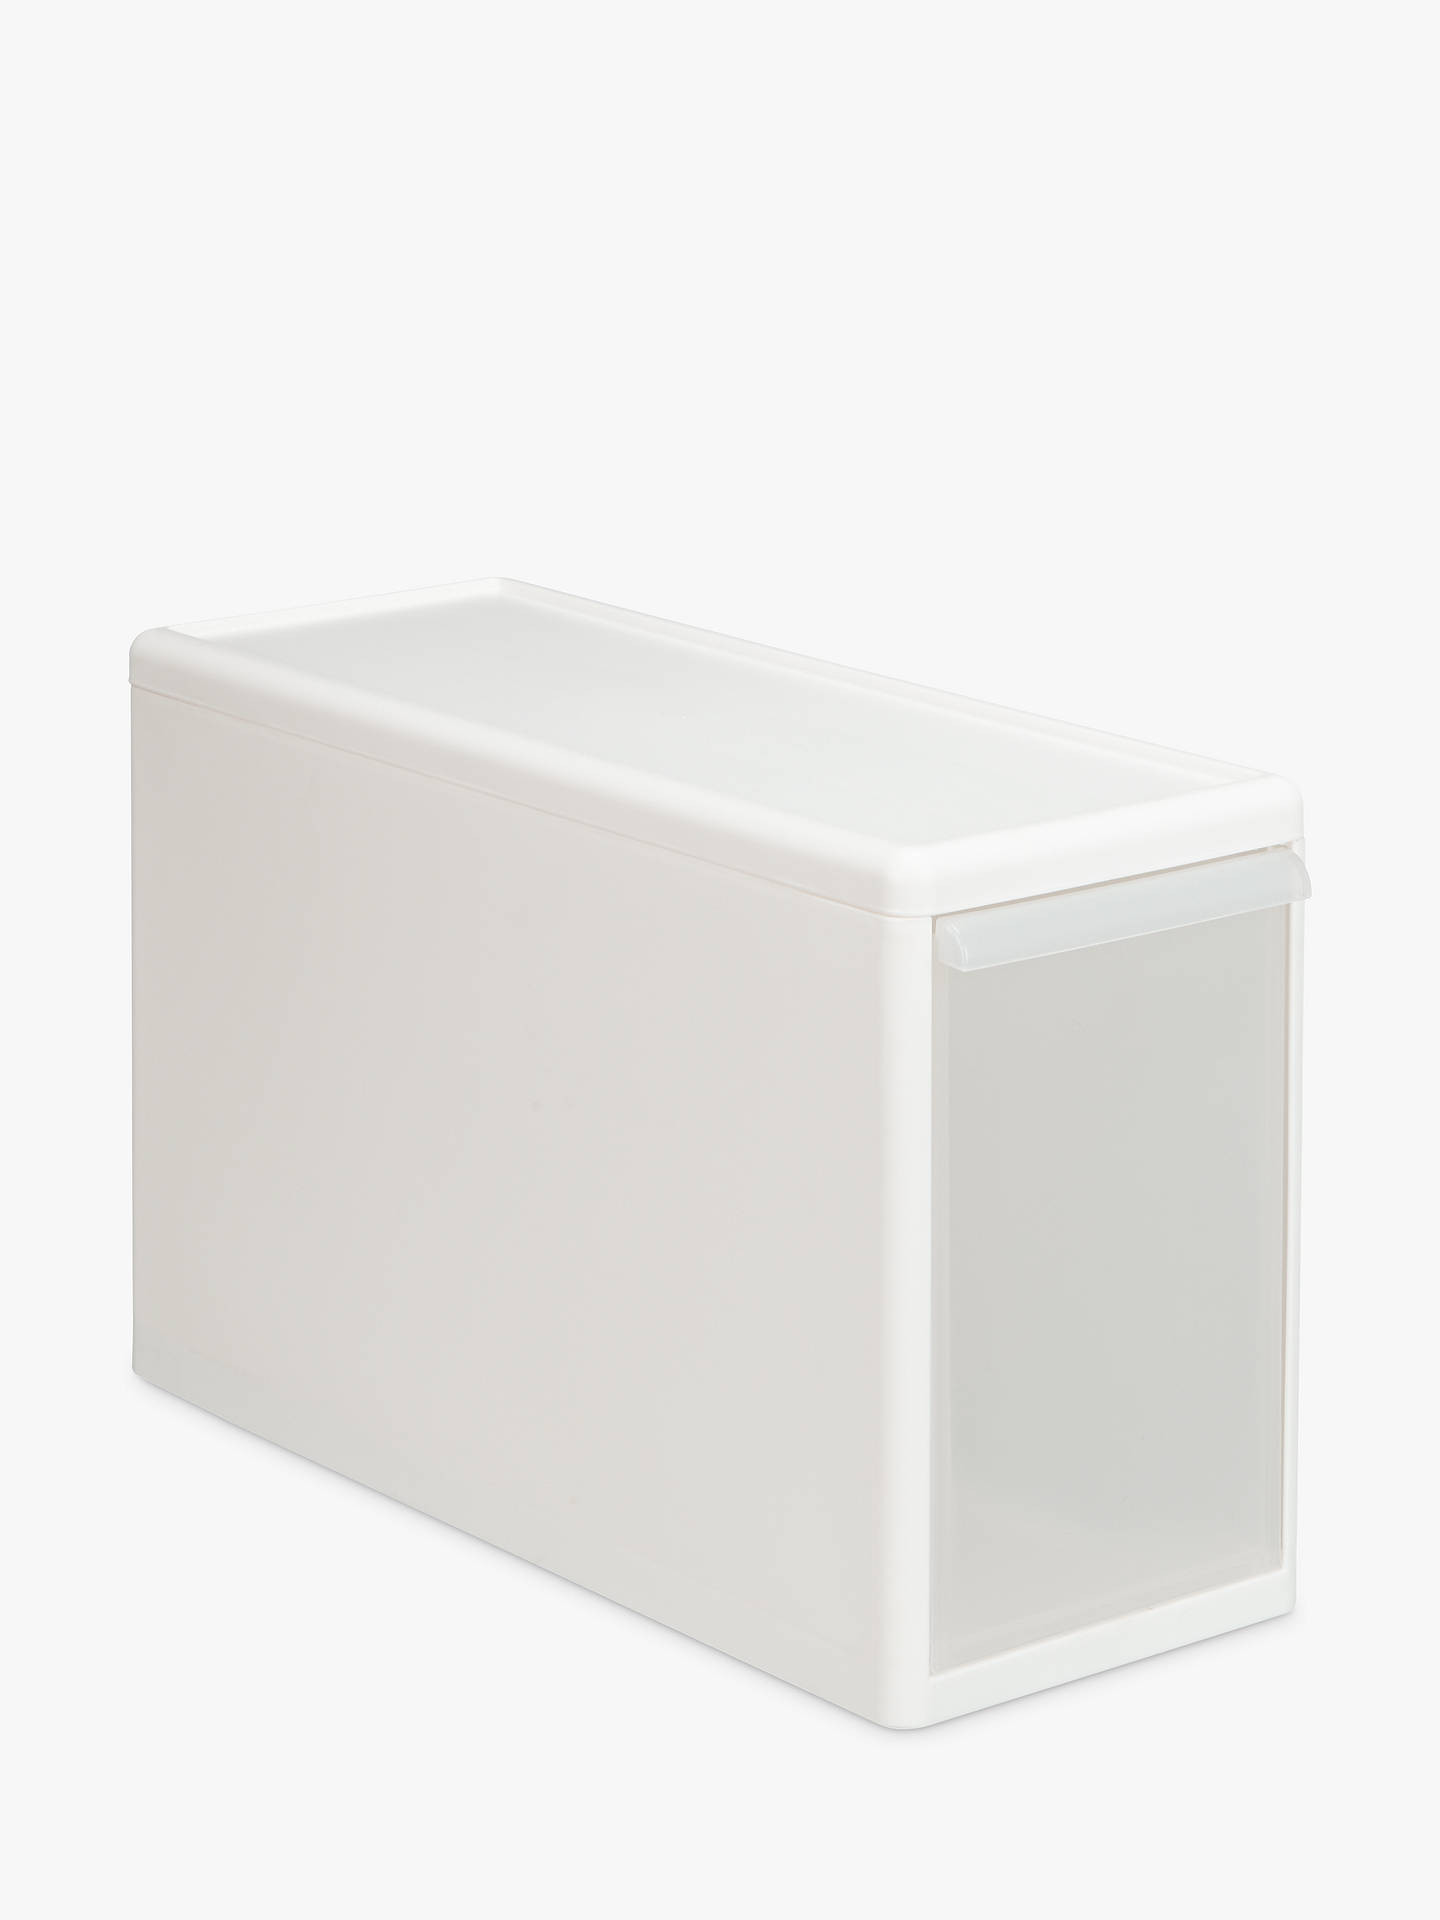 Buylike-it Unicom Plastic Storage Drawer, Large, W17cm Online at johnlewis.com